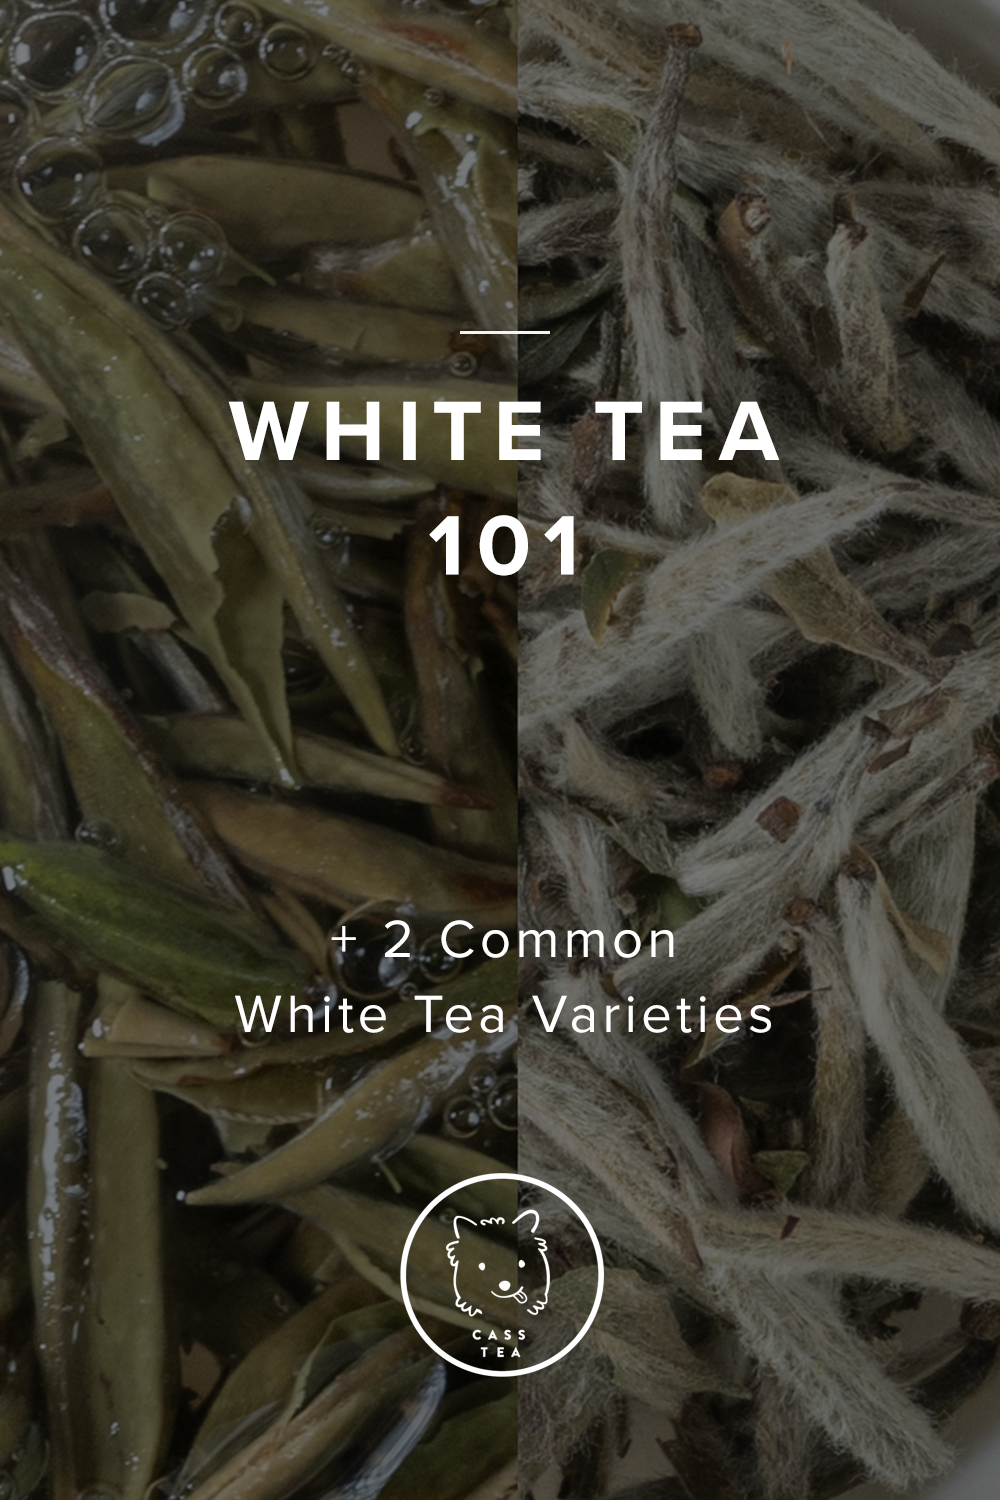 White Tea 101 will bring you up to speed on the basics of White tea. As the most minimally processed, and often misunderstood tea category, hopefully you'll find this quick cheat sheet fun and see what makes White tea so special.